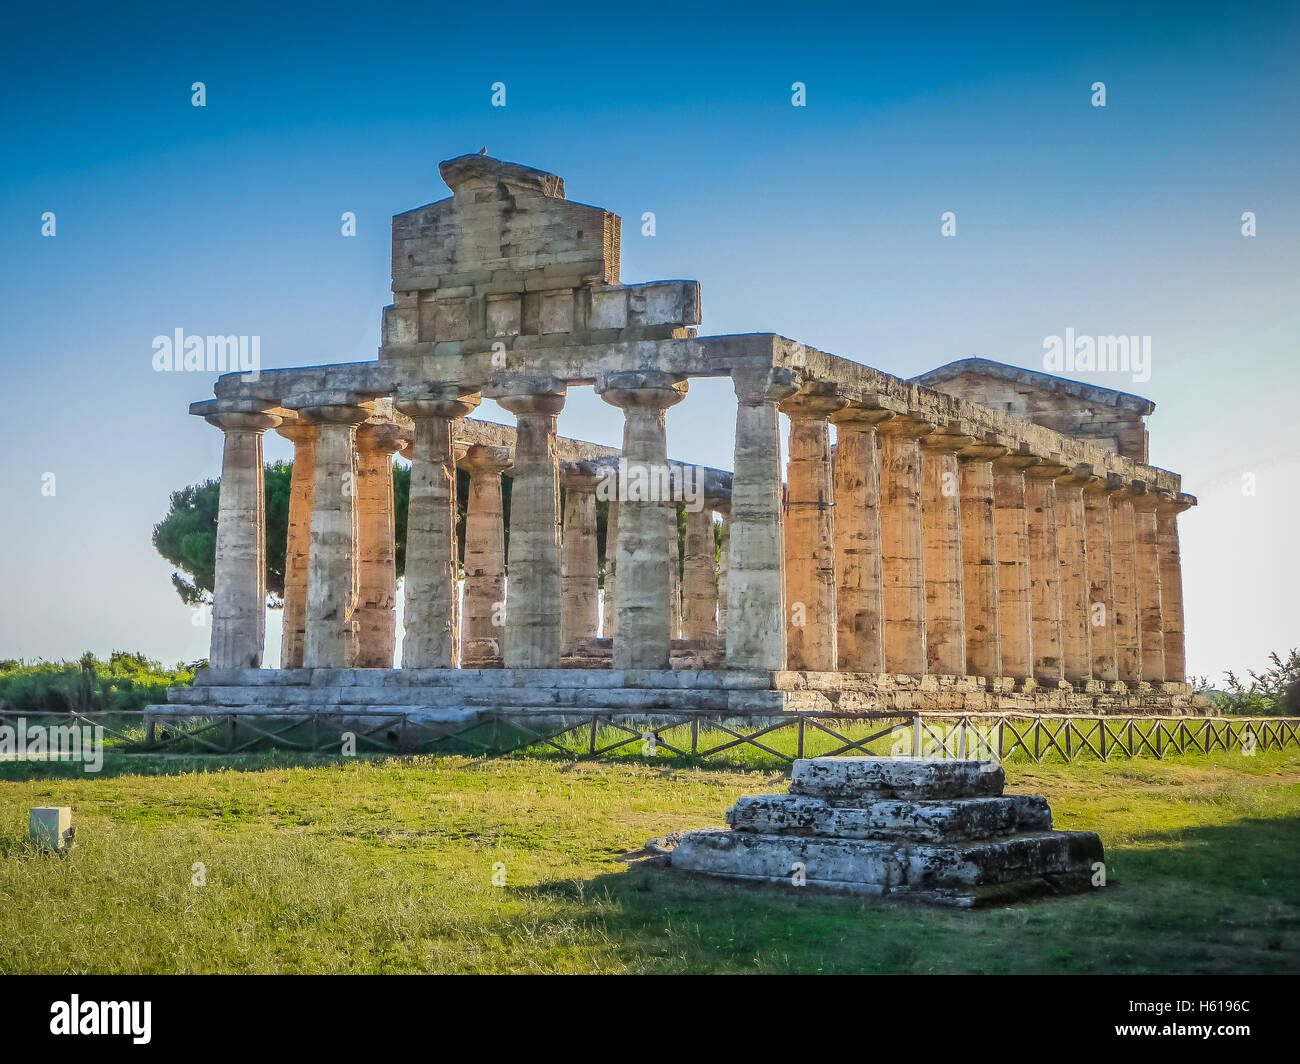 Ancient temple at famous Paestum Archaeological UNESCO World Heritage Site, which contains some of the most well - Stock Image